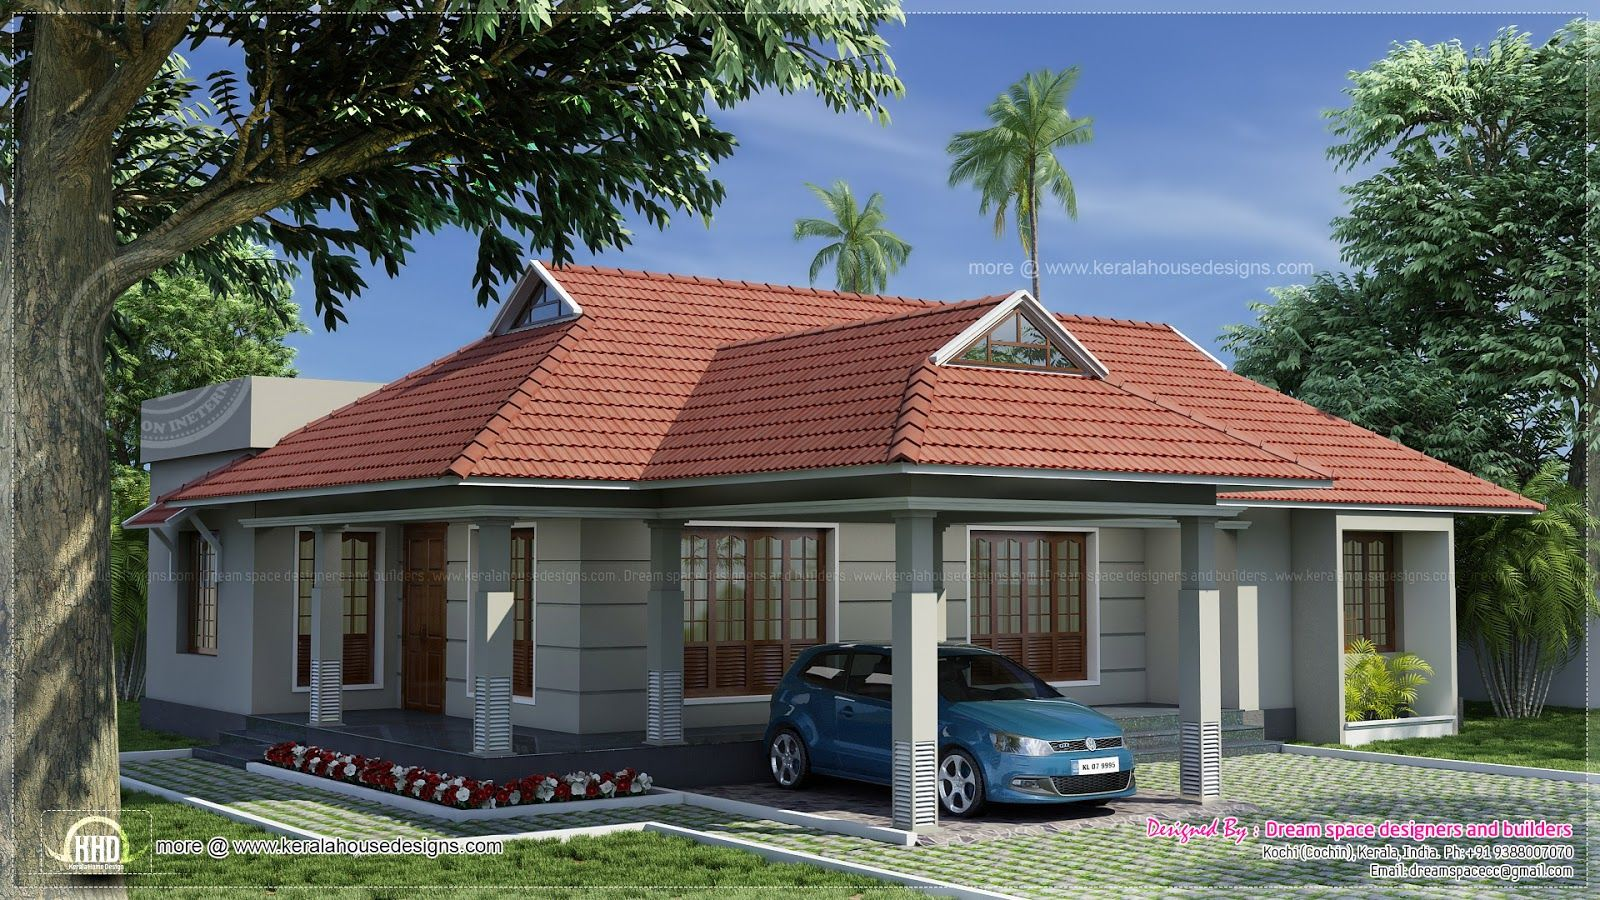 Single Storey Kerala Style Classic Villa In 2000 Sq Ft Home Http Www Home Design Blog Com Home Design I House Plans With Photos House Plans New House Plans